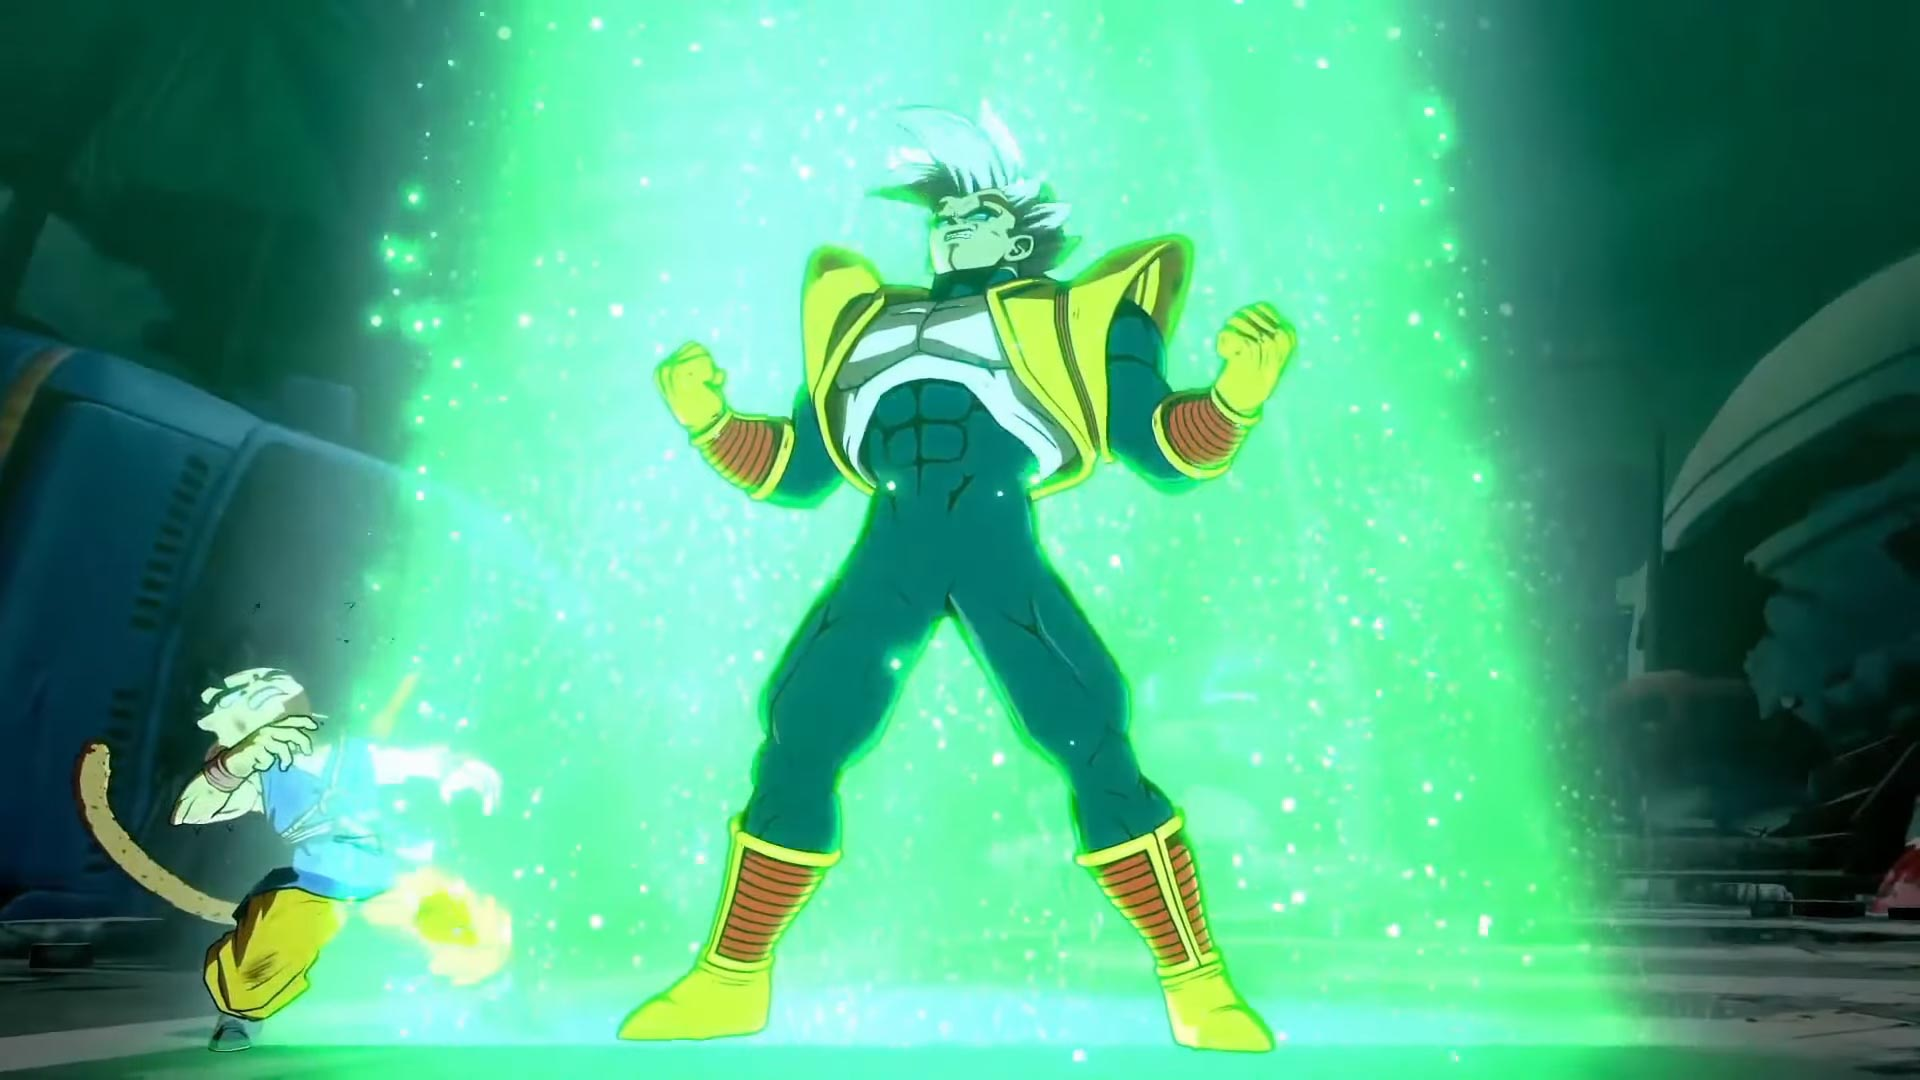 Super Baby 2 Trailer and Super Saiyan 4 Gogeta Reveal Image Gallery 5 out of 9 image gallery